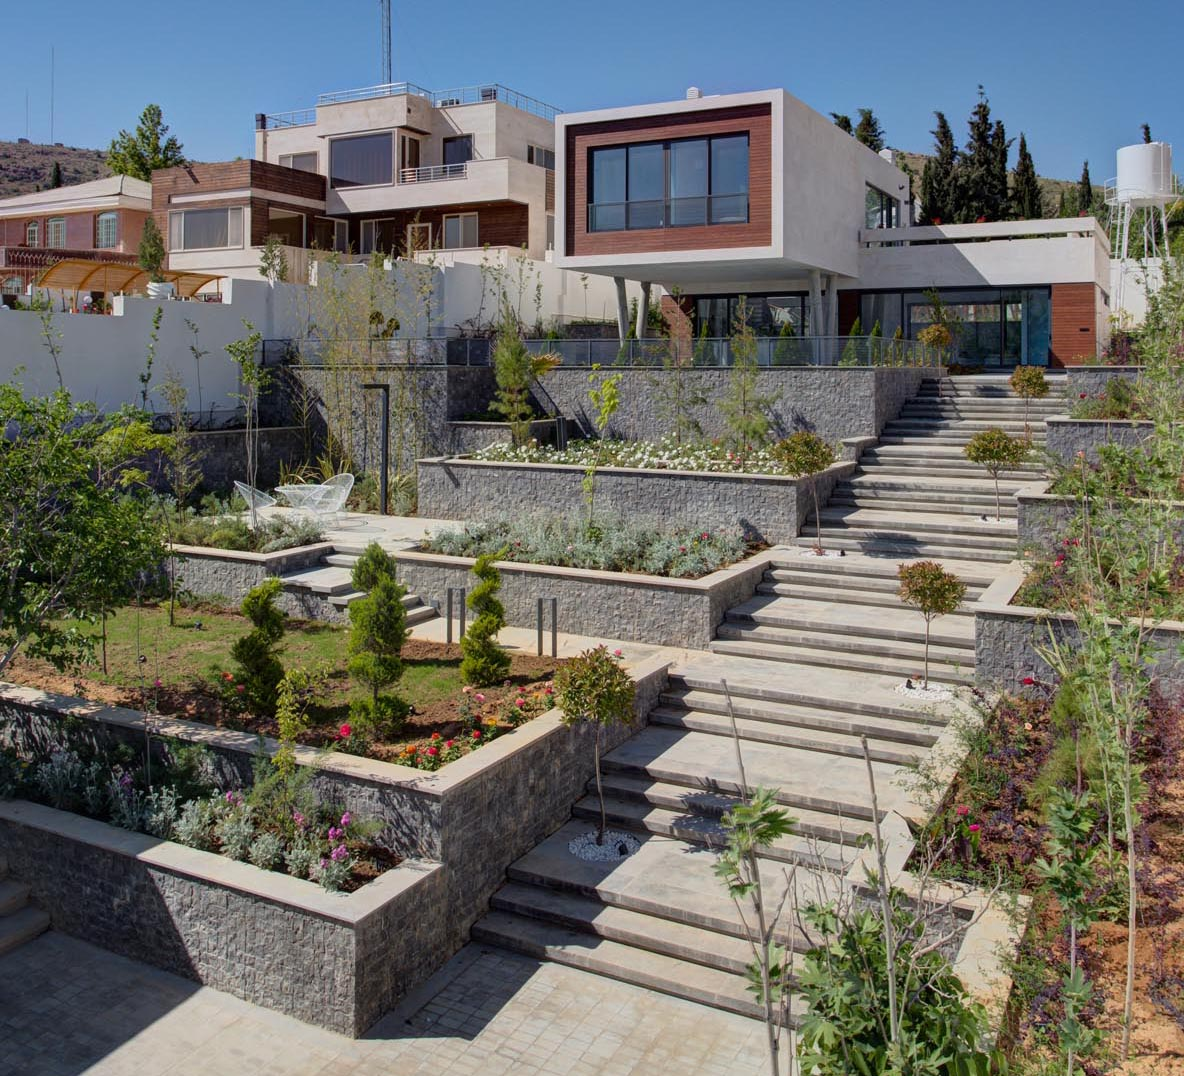 A terraced garden with wide stairs, sitting areas, and plenty of plants.